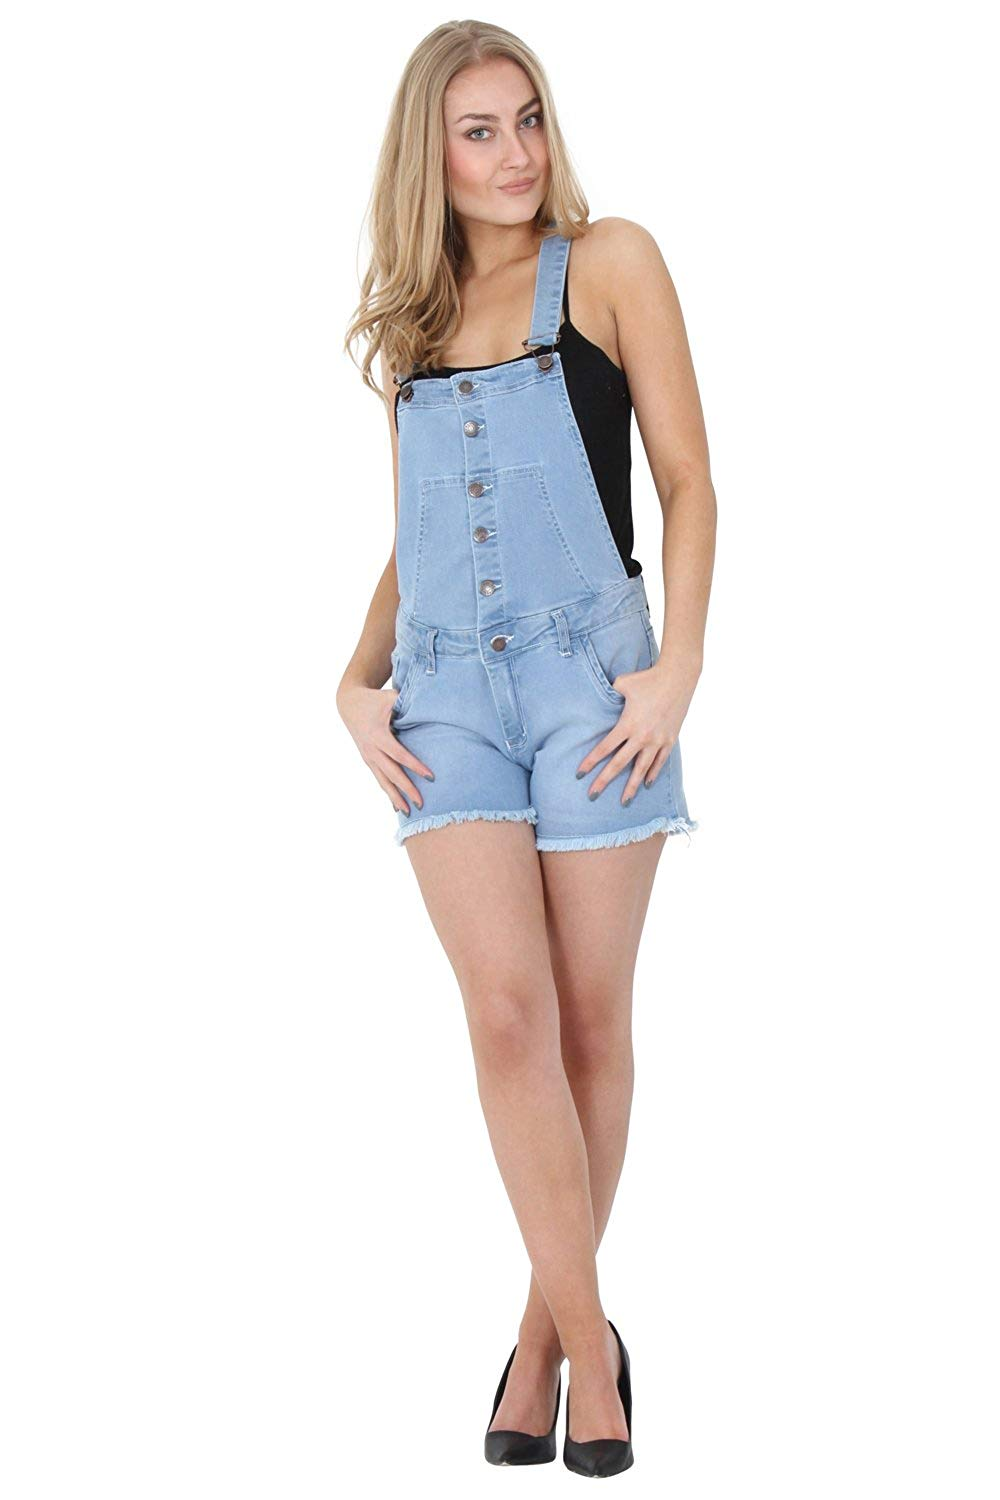 ee71ca12a9 Get Quotations · G8 One Light Wash Denim button Front Bib Overall Shorts  Ladies Denim Overall Shortalls